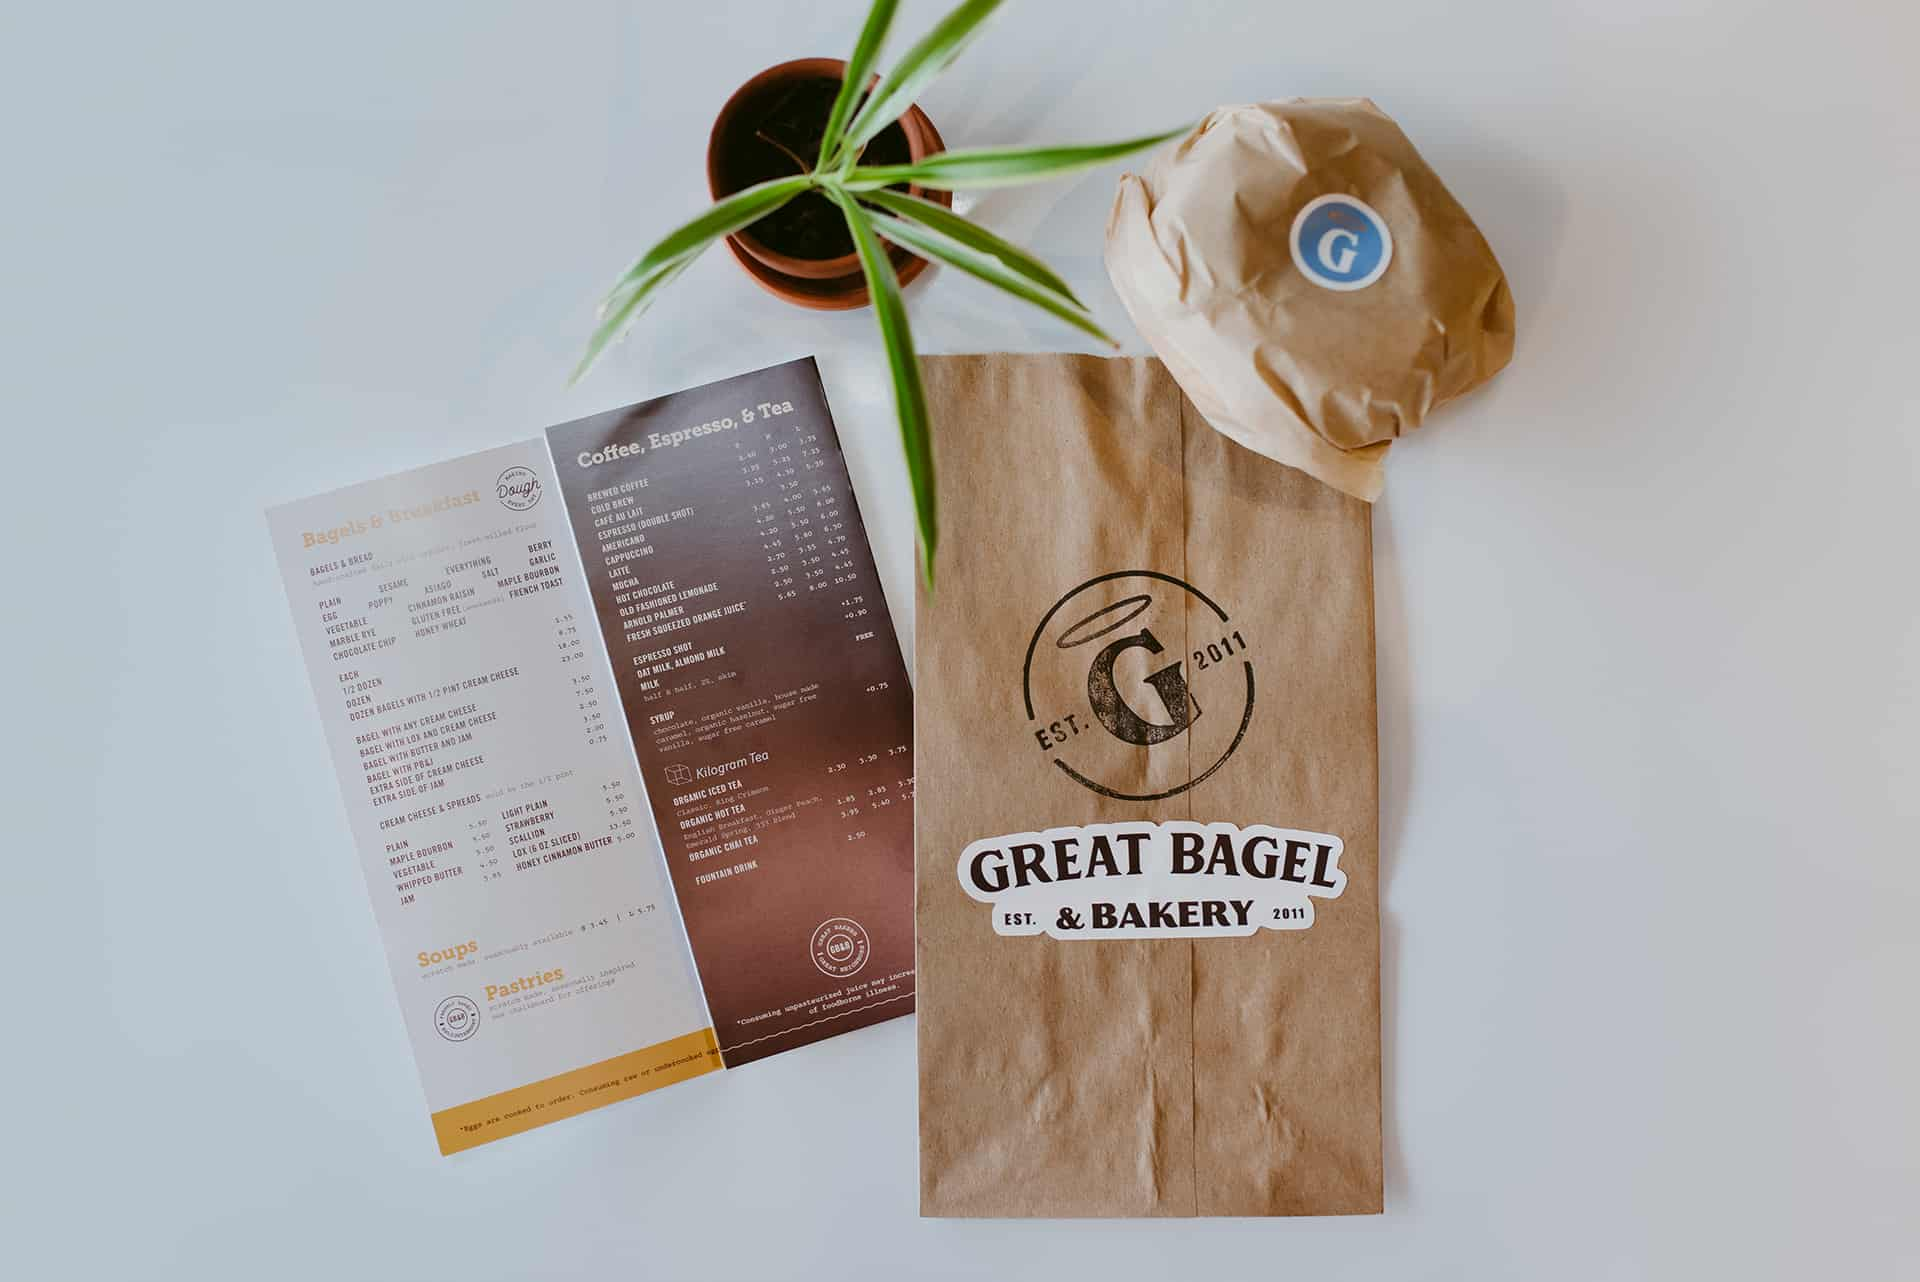 Great Bagel cafe interior design and branding